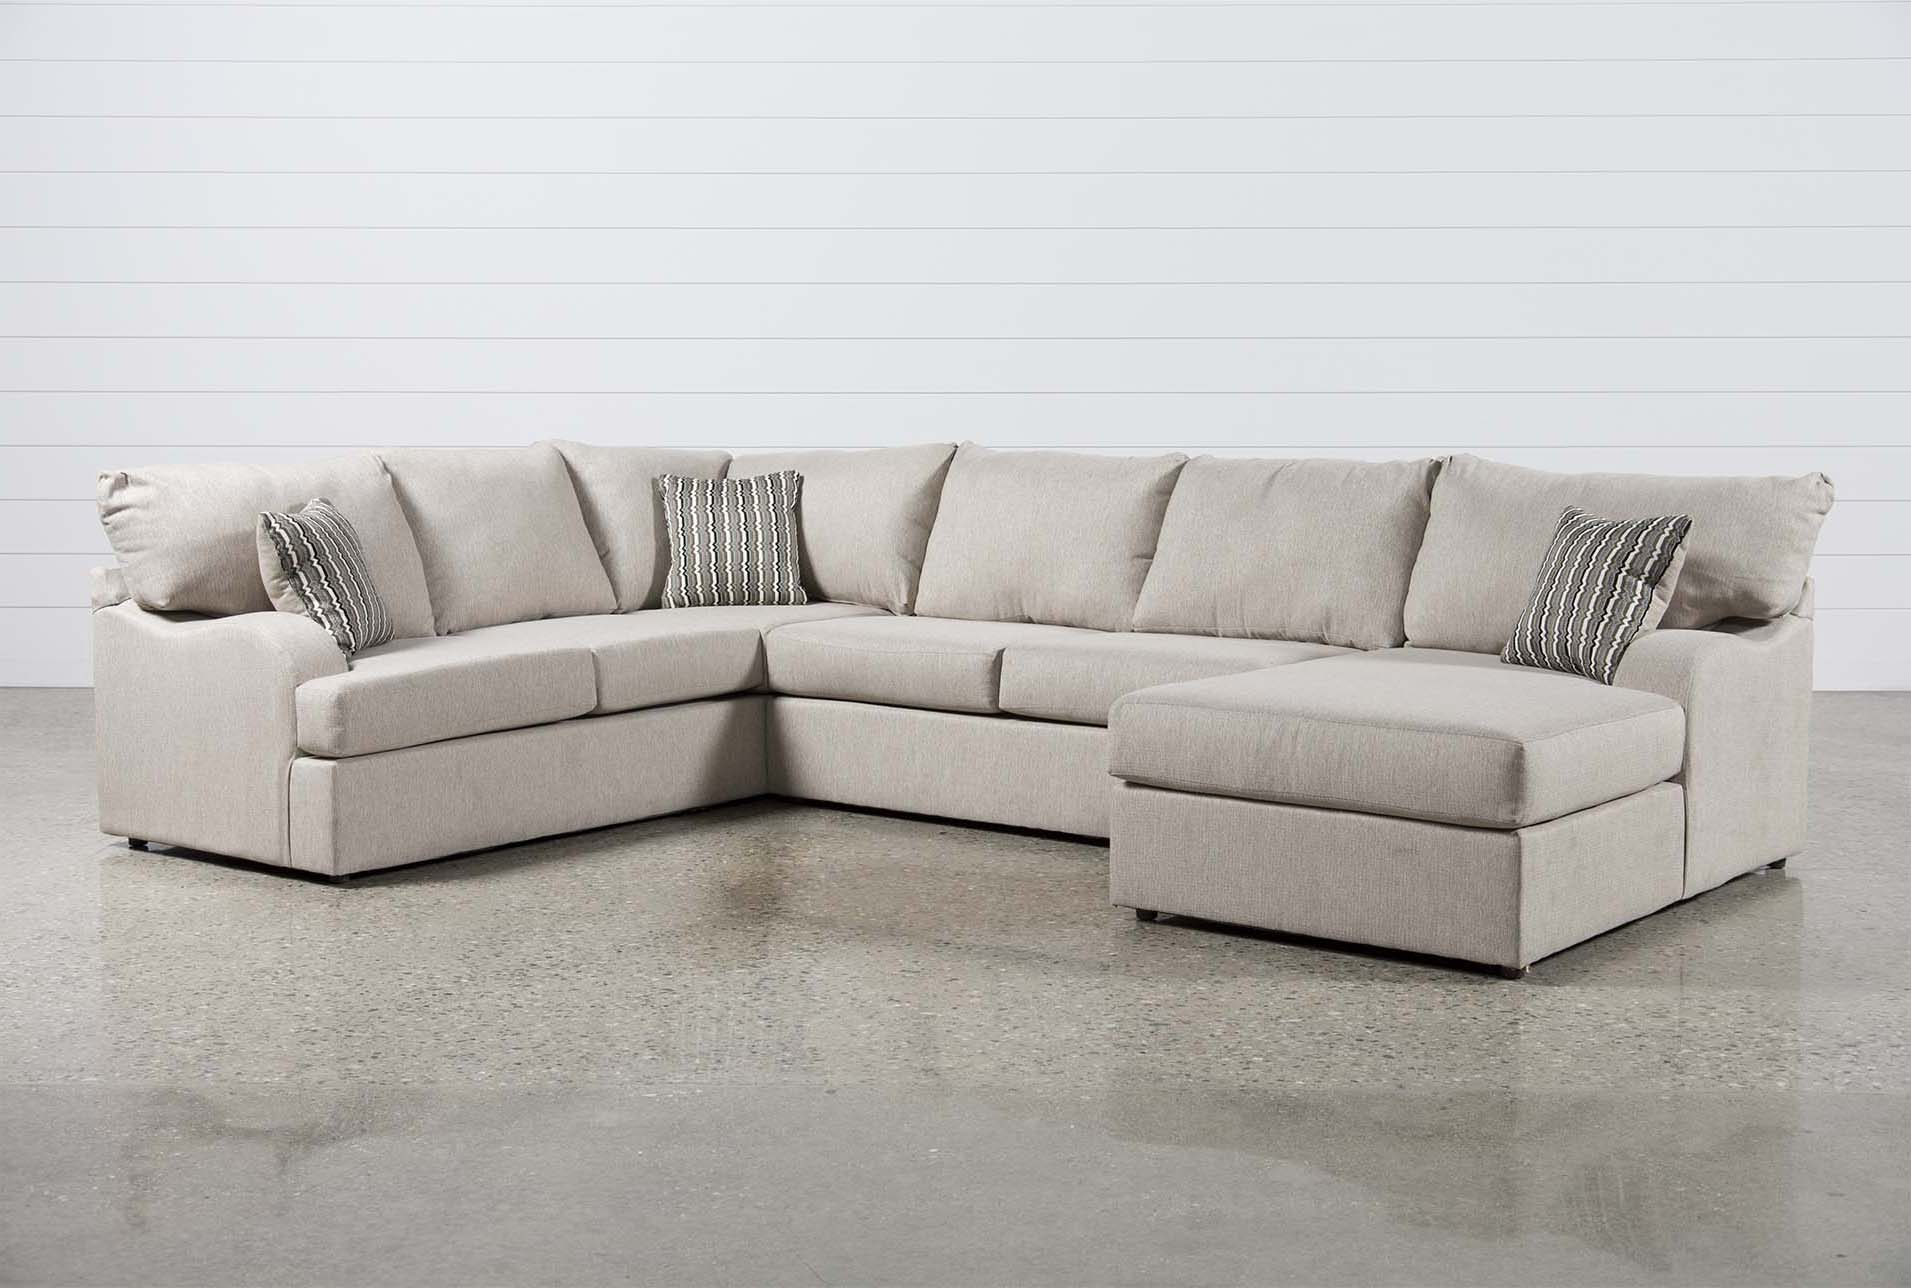 Superbe Meyer 3 Piece Sectional W/Raf Chaise